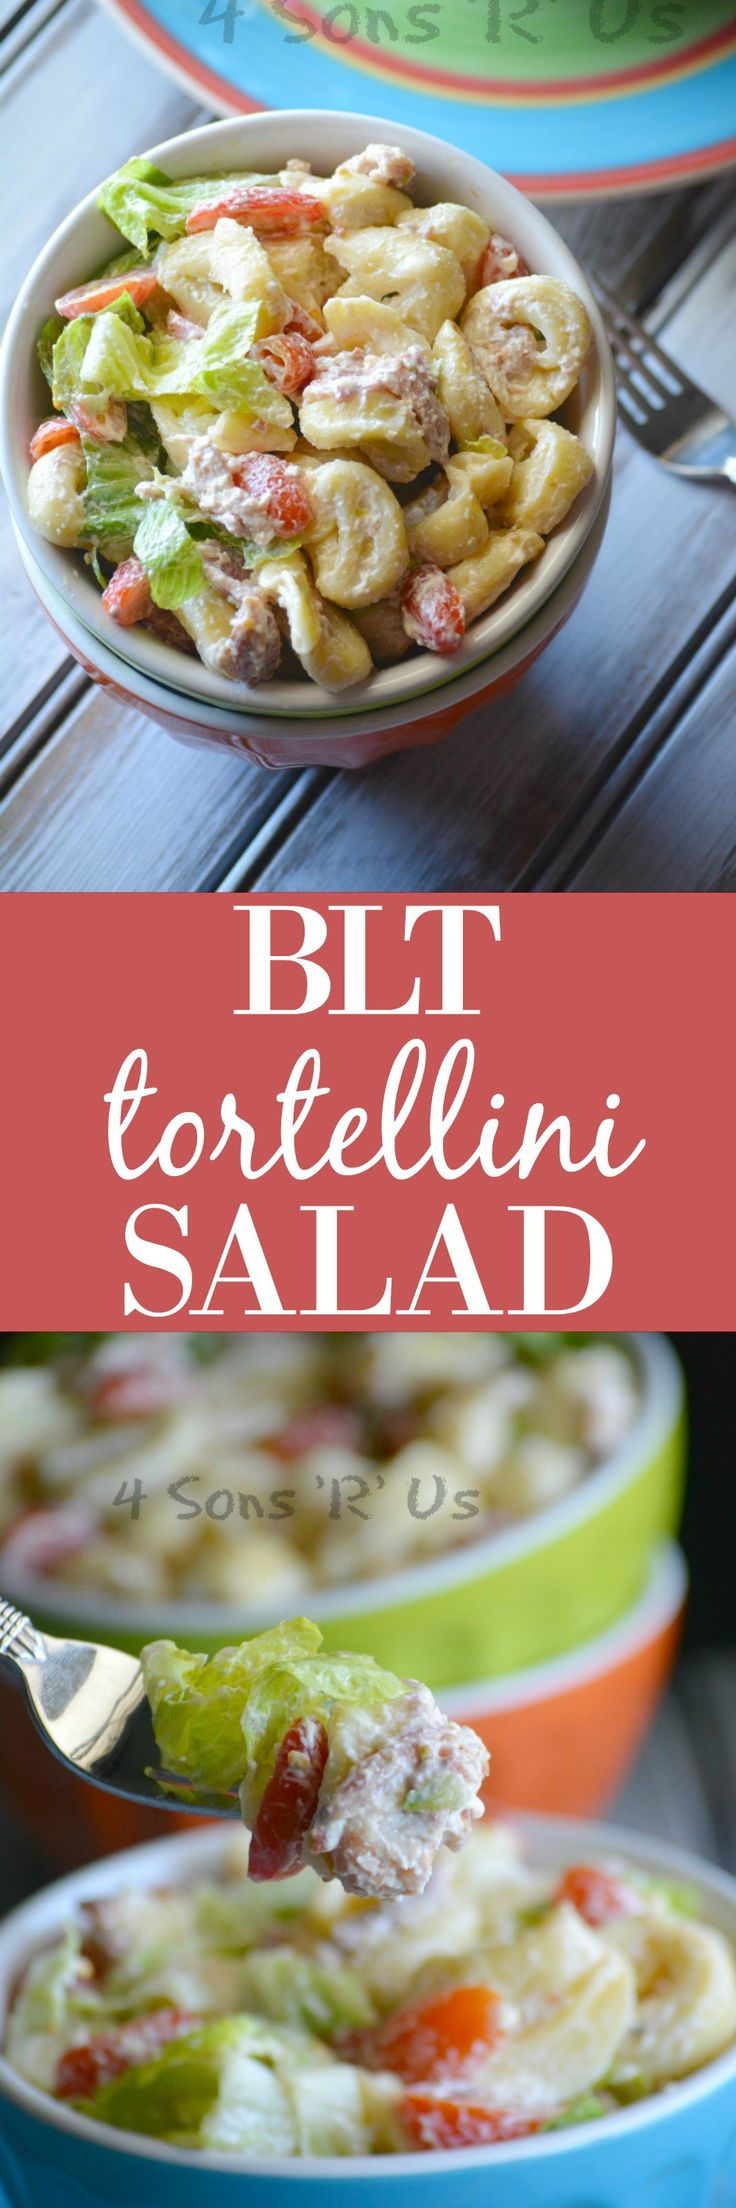 This creamy tortellini based pasta salad is a perfect all-in-one Summer meal. Featuring cheese-stuffed tortellini, crisp crumbled bacon, leafy pieces of fresh romaine lettuce, and sliced grape tomatoes– everything's tossed in a rich, creamy dressing before being chilled and serve cold. BLT Tortellini Salad makes a solid lunch or a lovely light supper.